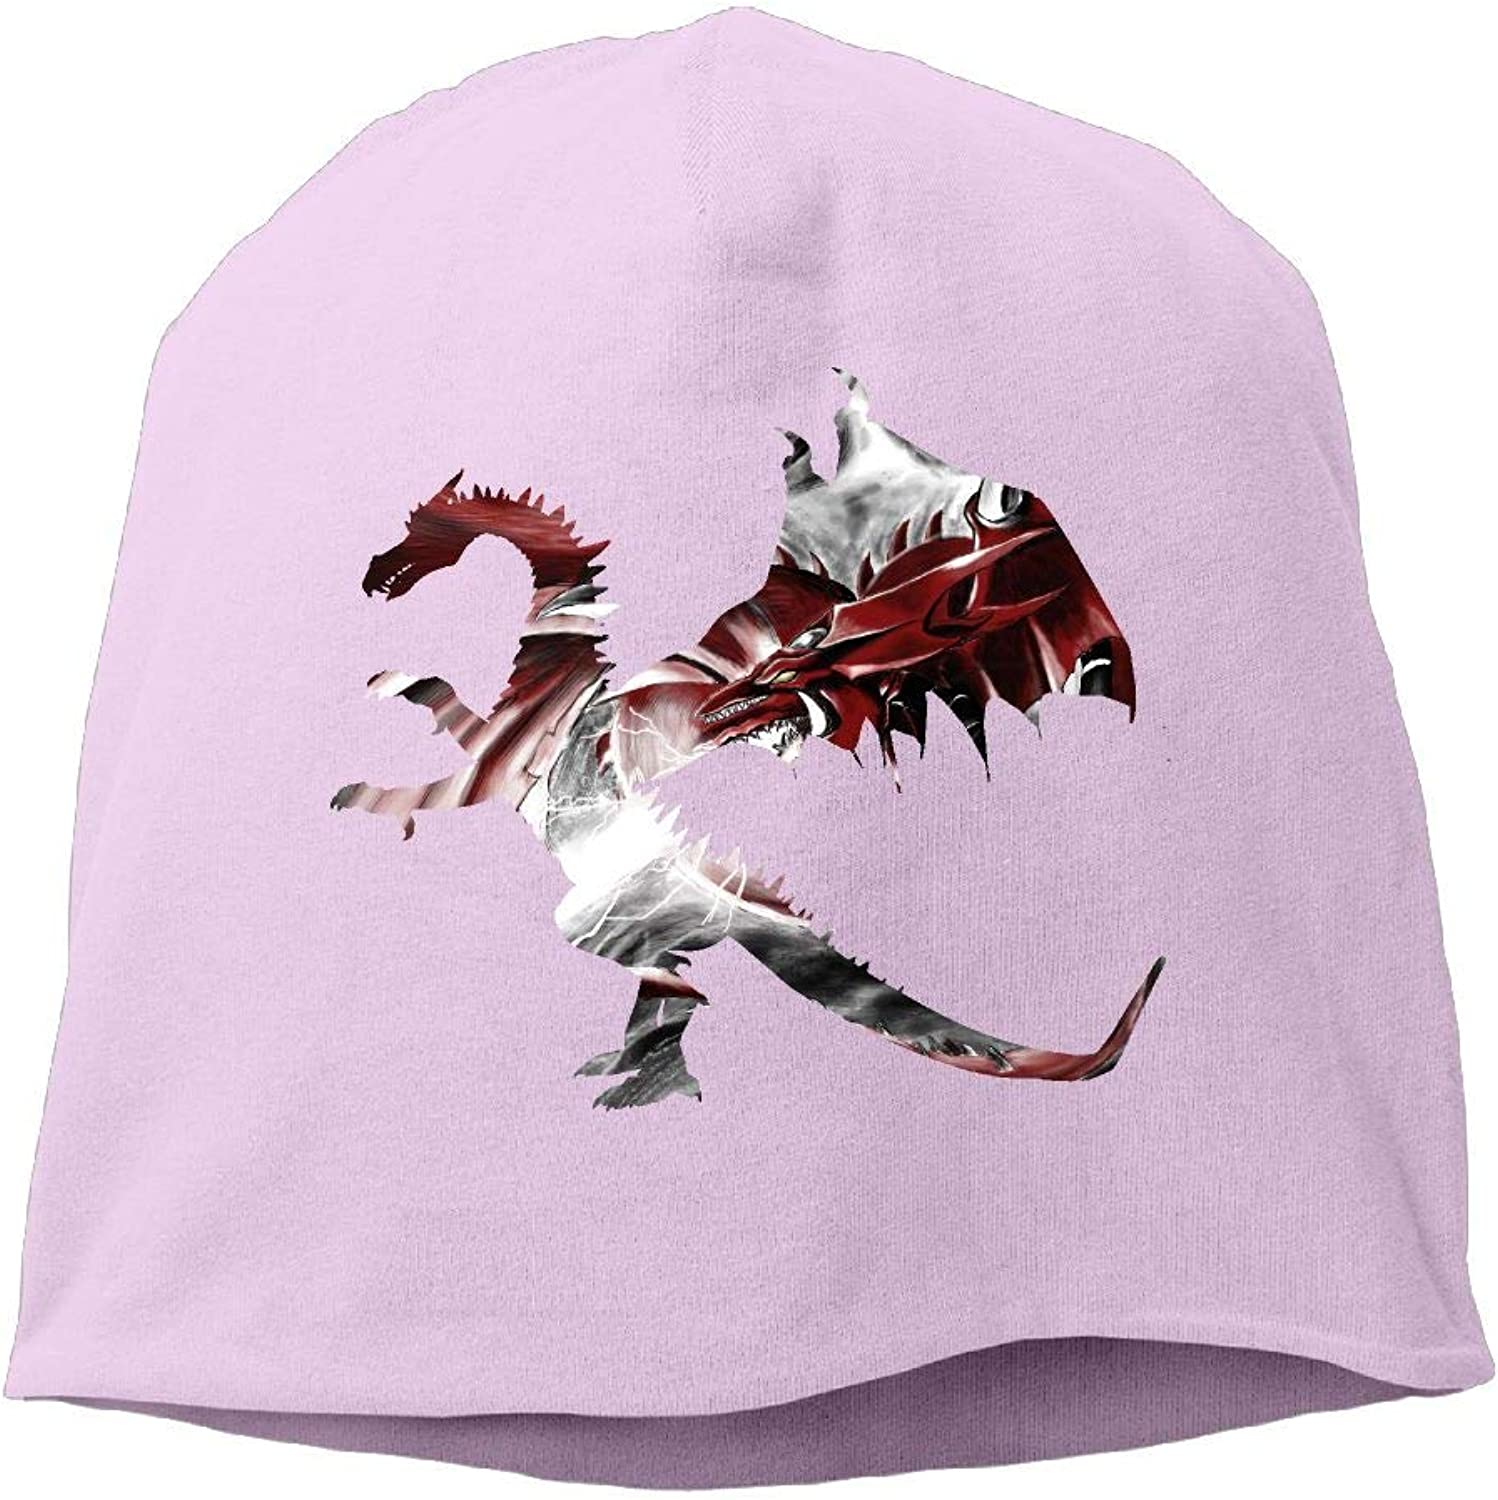 Jusxout Knit Cap Beanie Hats Winter Warm Dragon Angry Women's Fashion